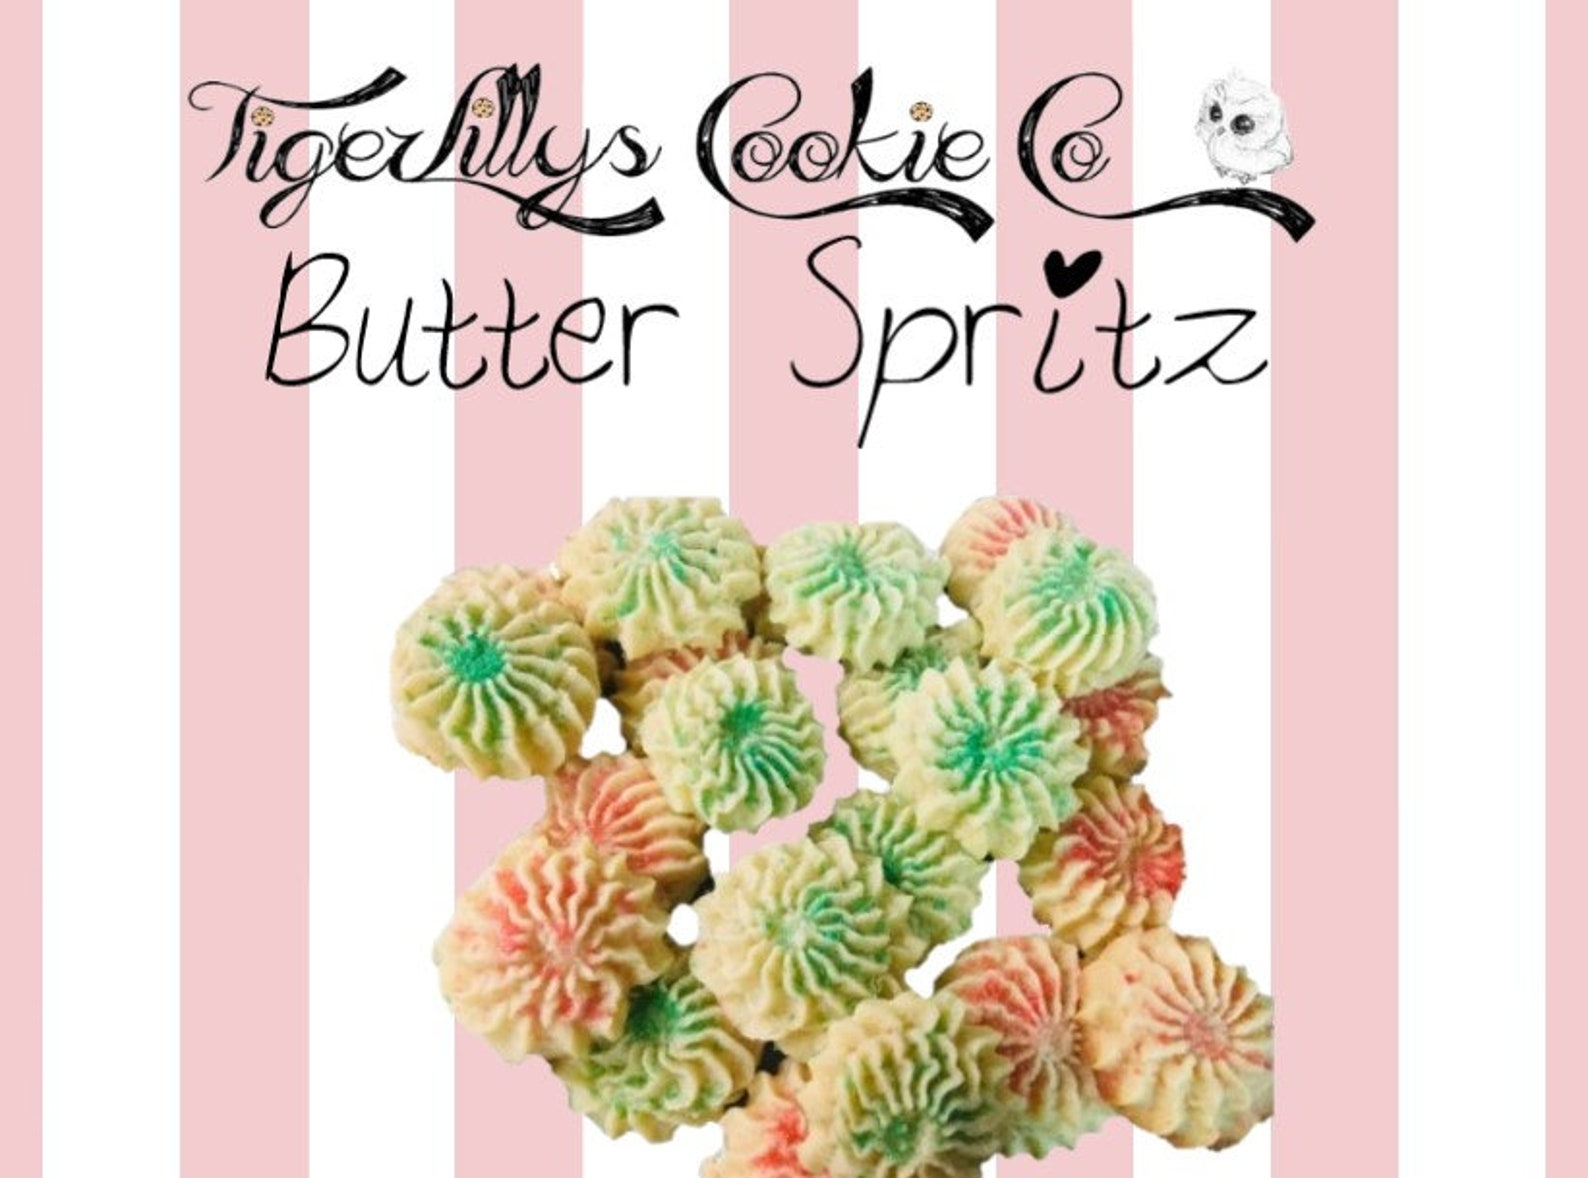 Homemade Delicious Buttery Spritz Cookies Bite Size by TigerLillys Cookie Co